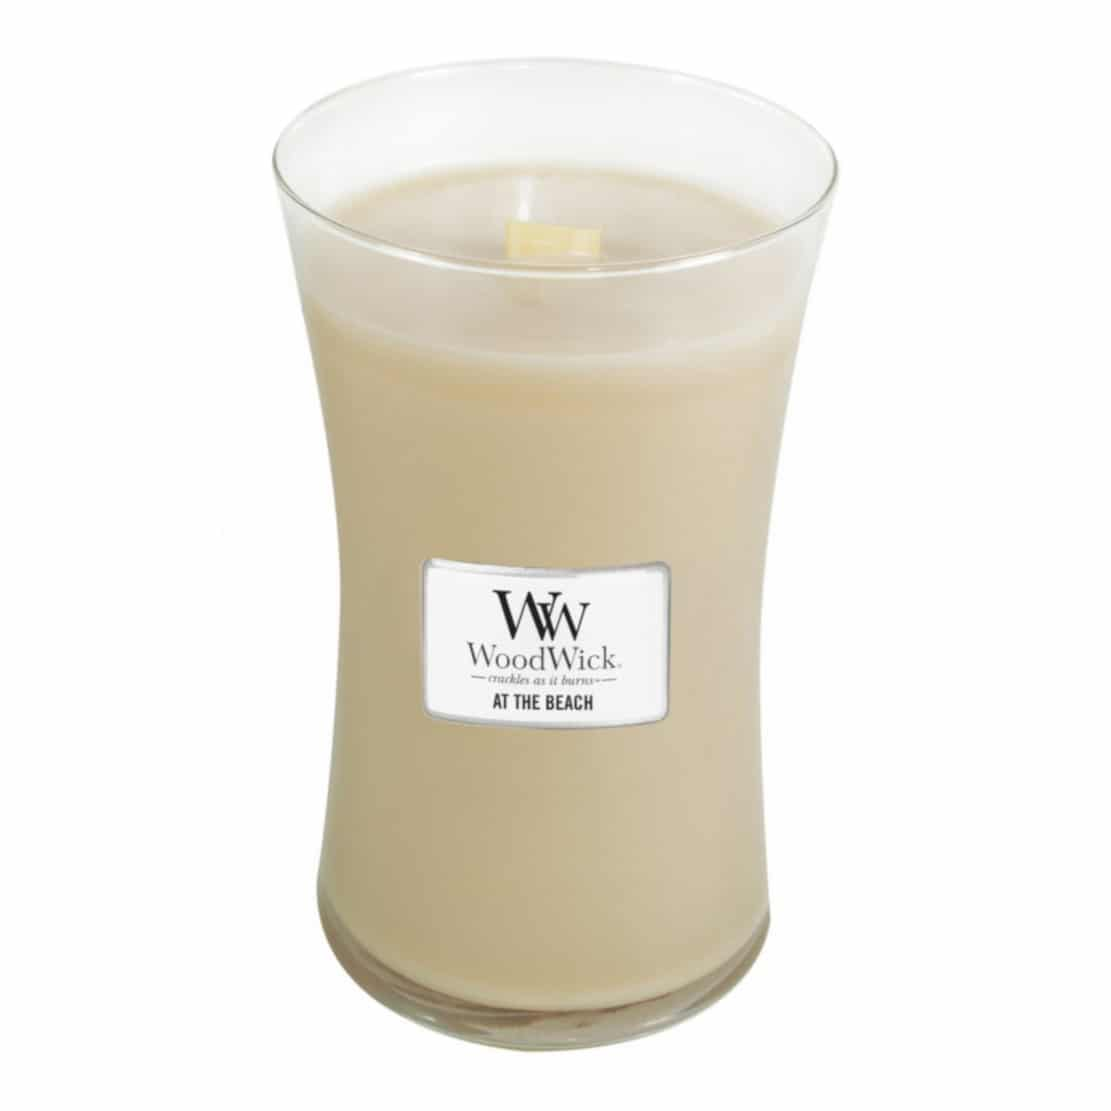 Woodwick At The Beach Large Jar Candle